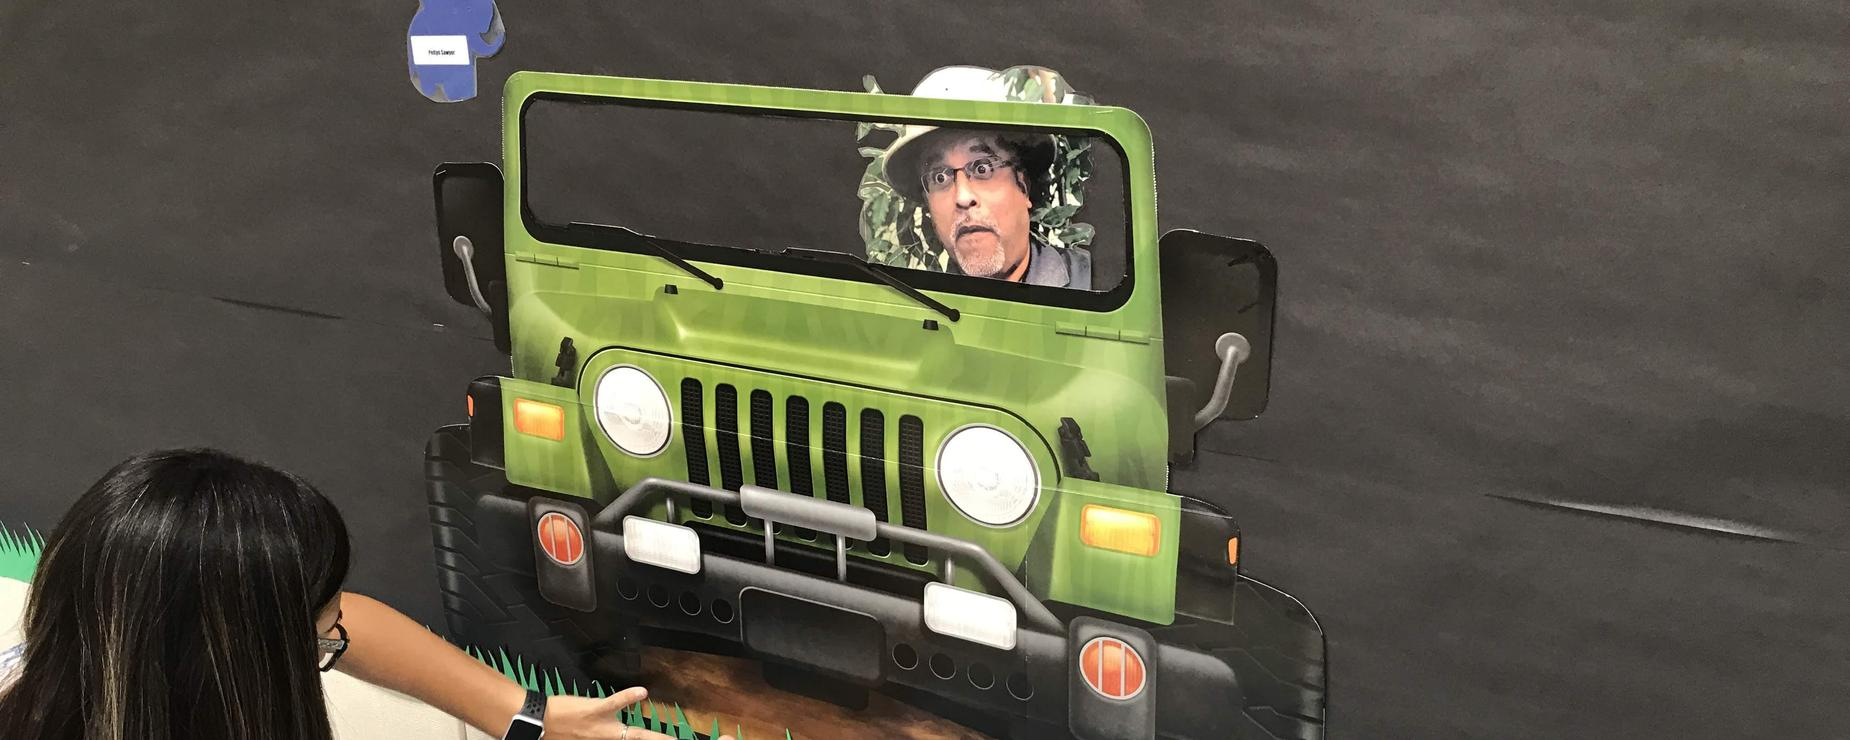 Mr. Z in jeep, funny expression